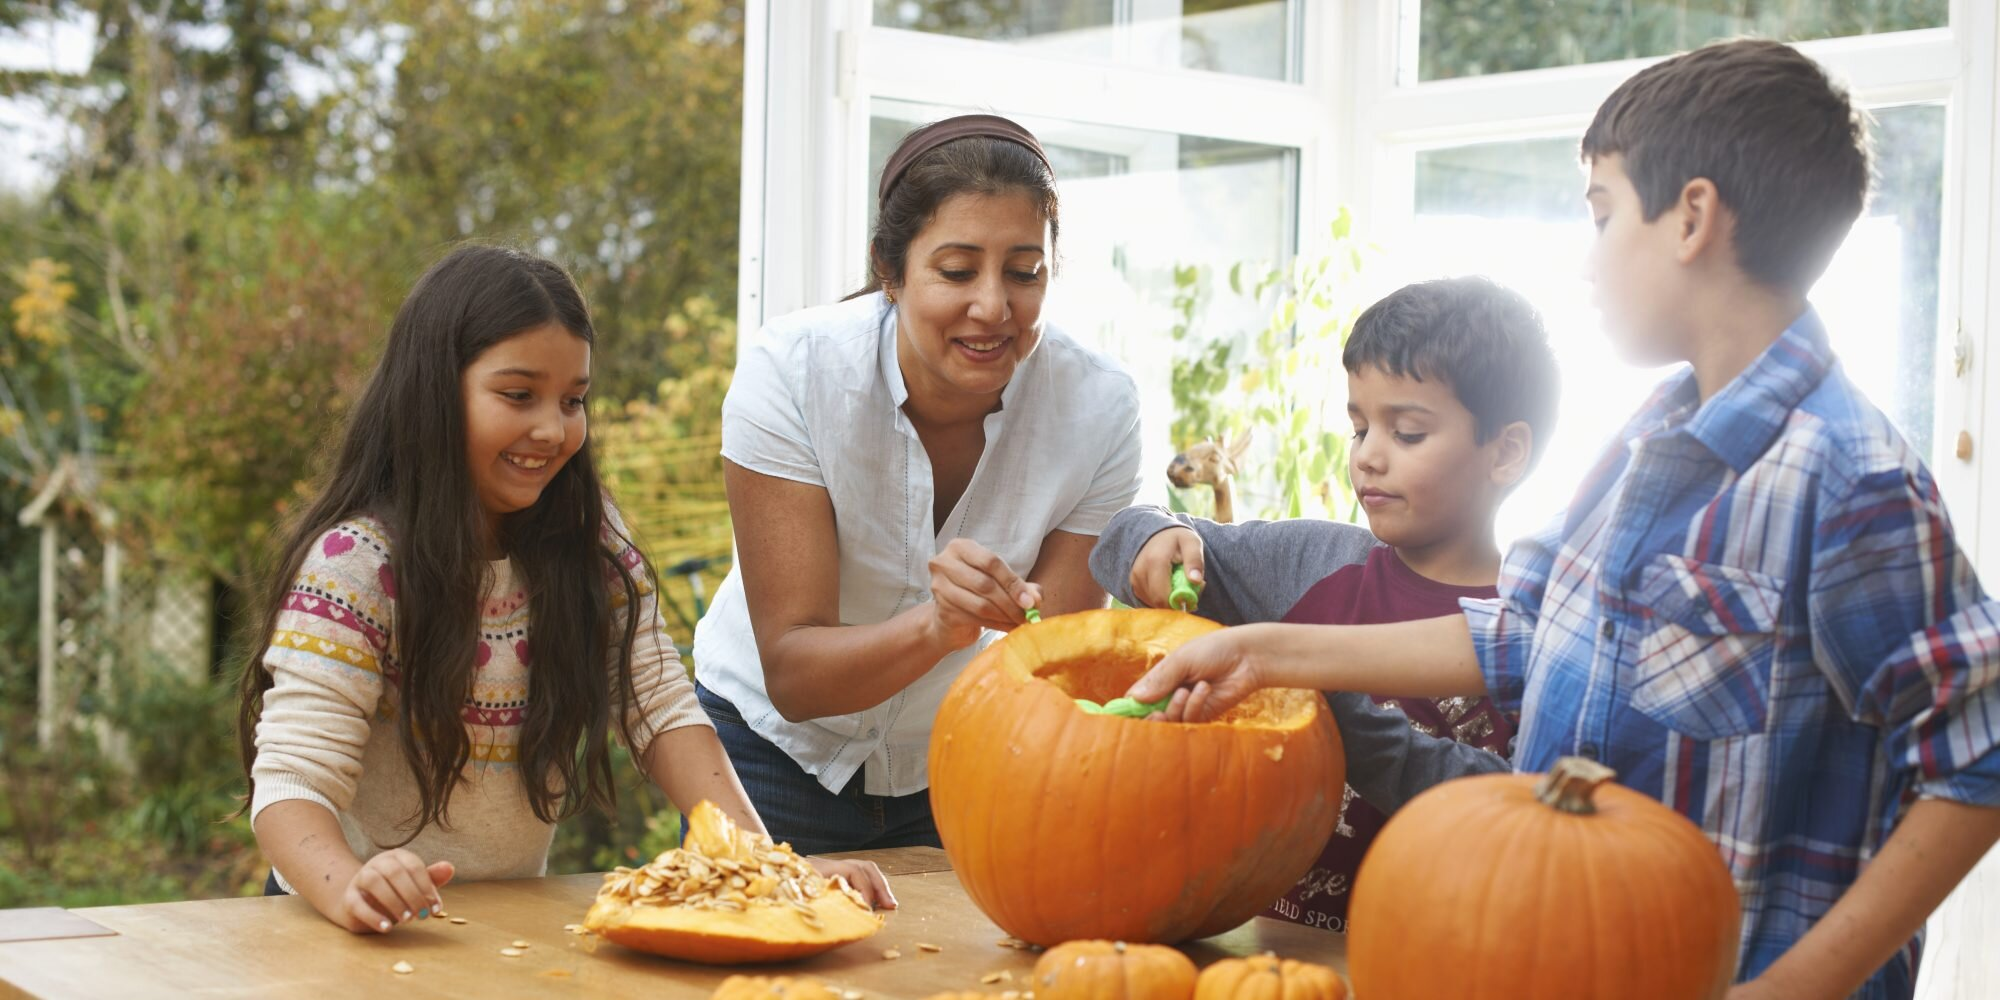 host a family pumpkin carving night